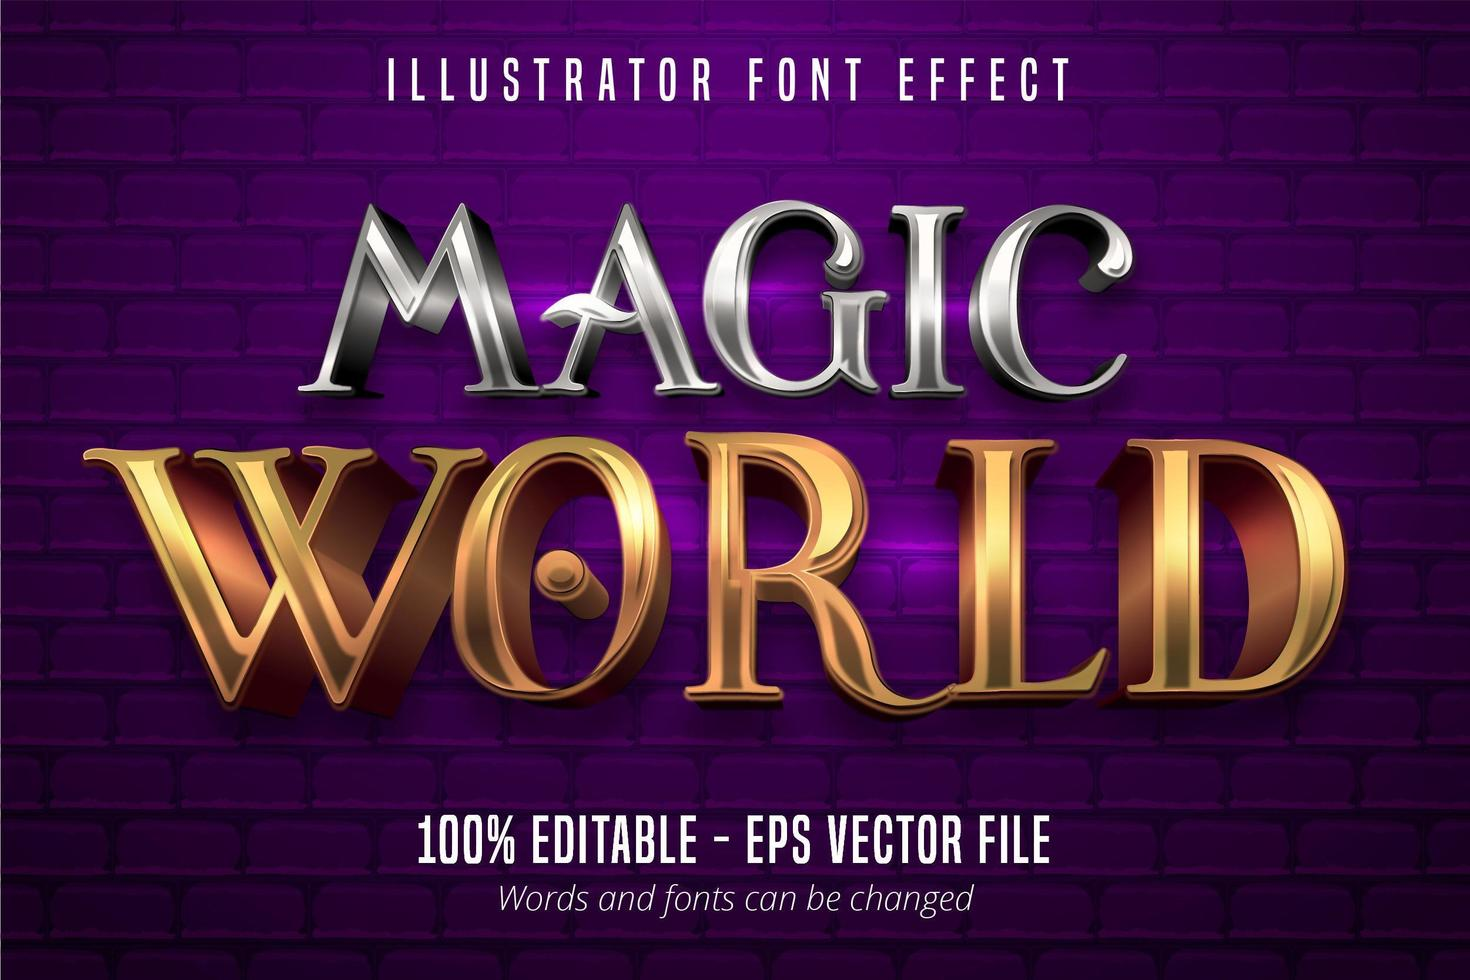 Magic World text, 3d gold and silver metallic style editable font effect vector